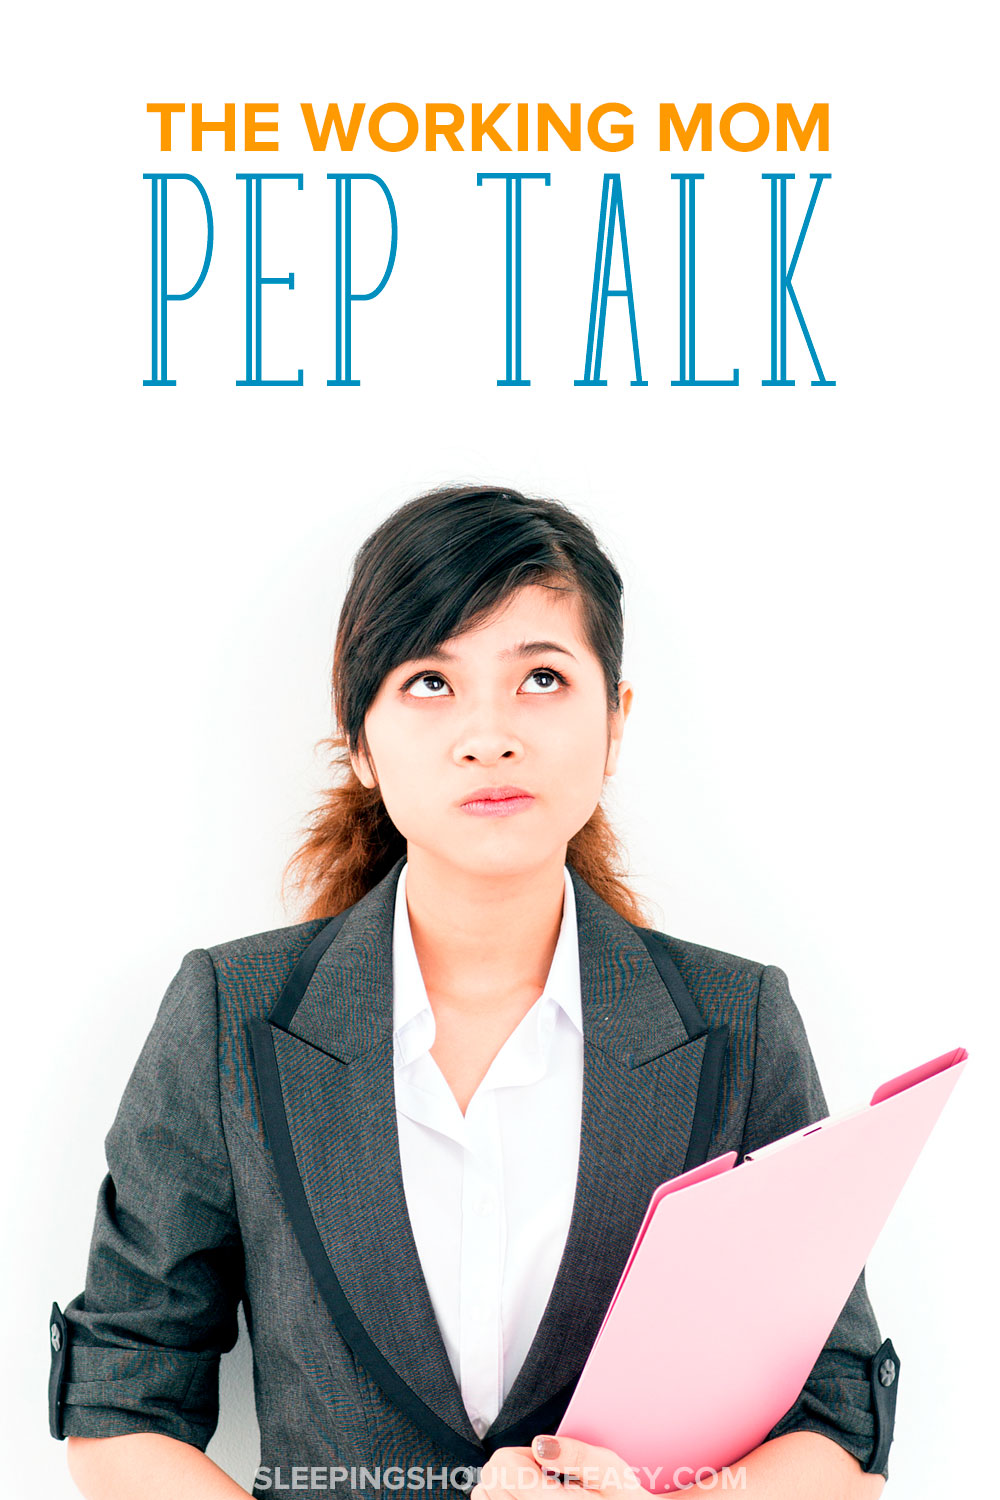 Do you feel guilty for leaving your kids to come to work? Some days are harder than others, especially when your child is sick. Here is your working mom pep talk to get you through the day.